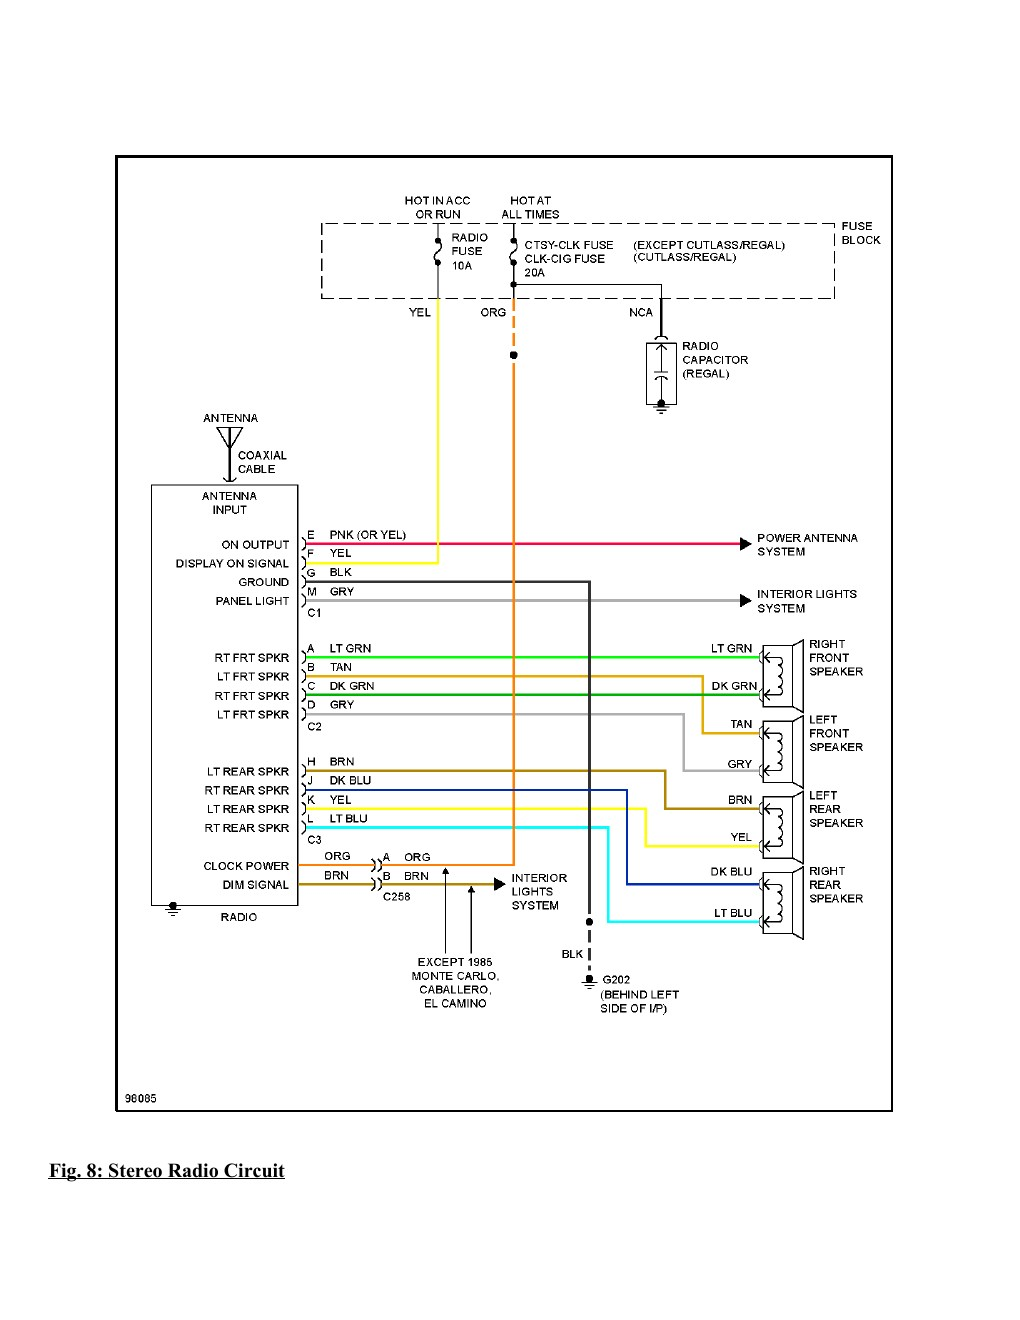 chevy monte carlo wiring diagrams autowiring mx tl 1998 chevy monte carlo wiring diagram 1965 chevy [ 1020 x 1320 Pixel ]